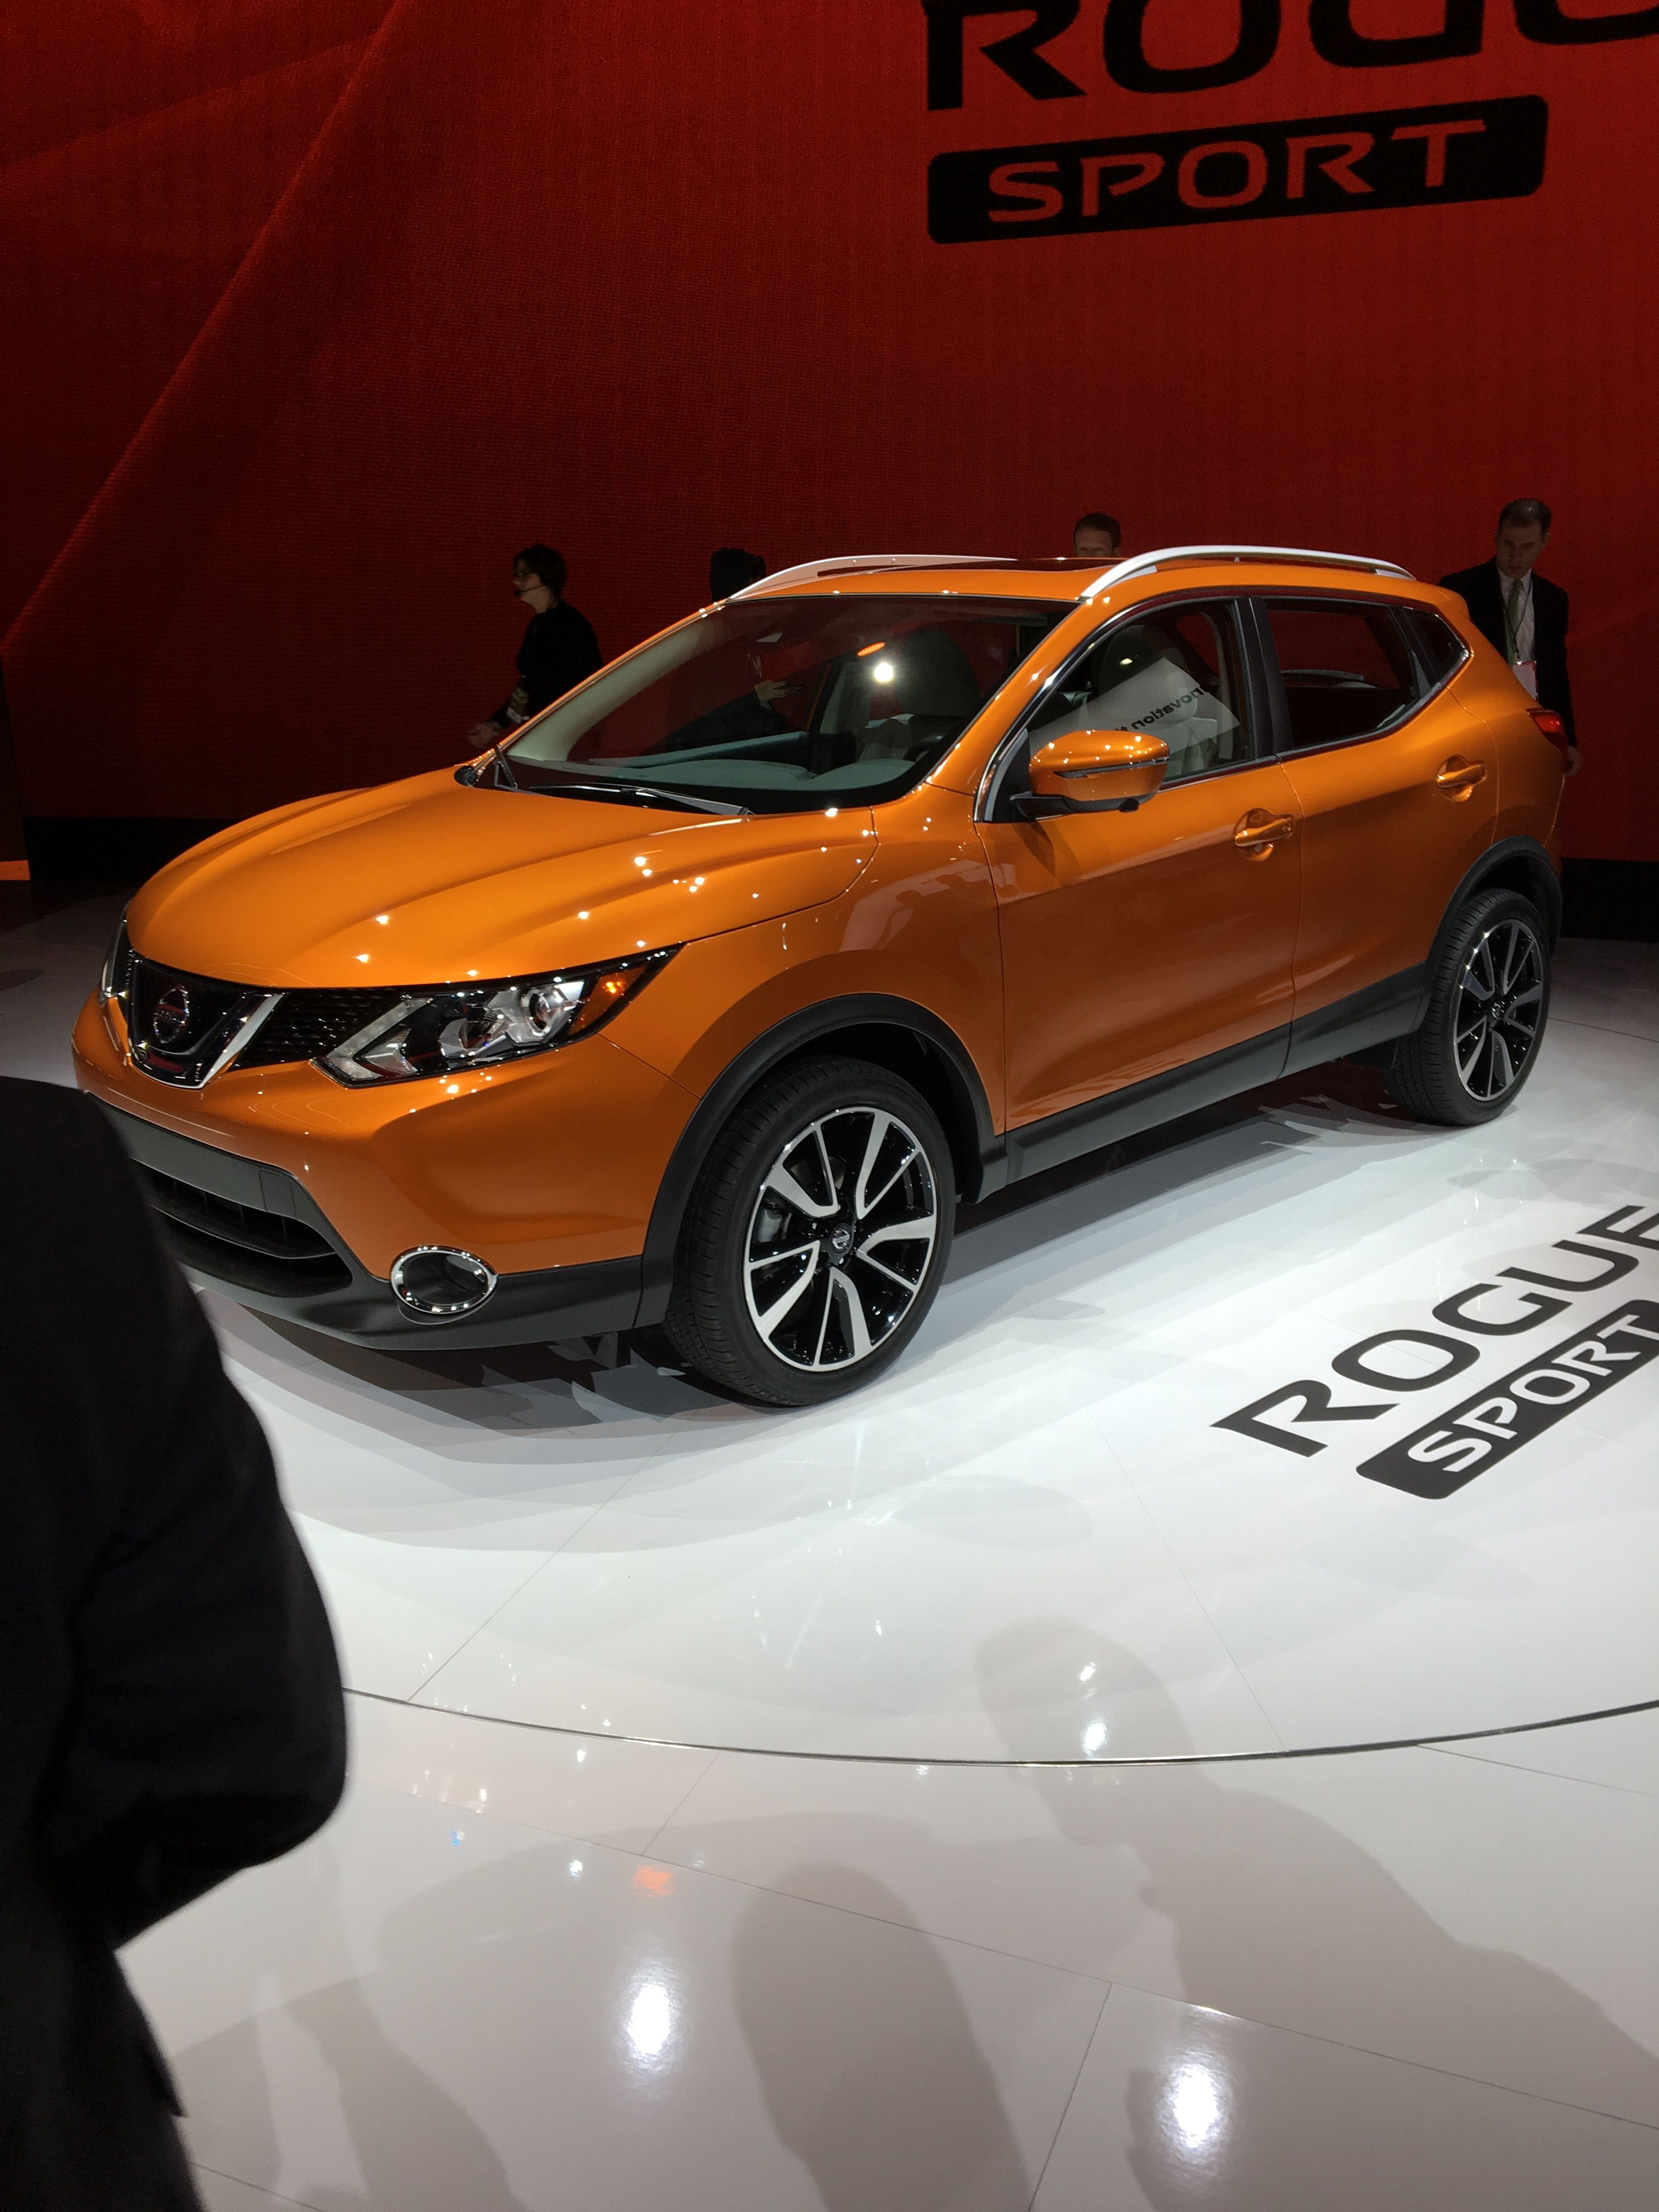 The 2018 Nissan Rogue Sport ℛℰ℘i ℕnℰD by Averson